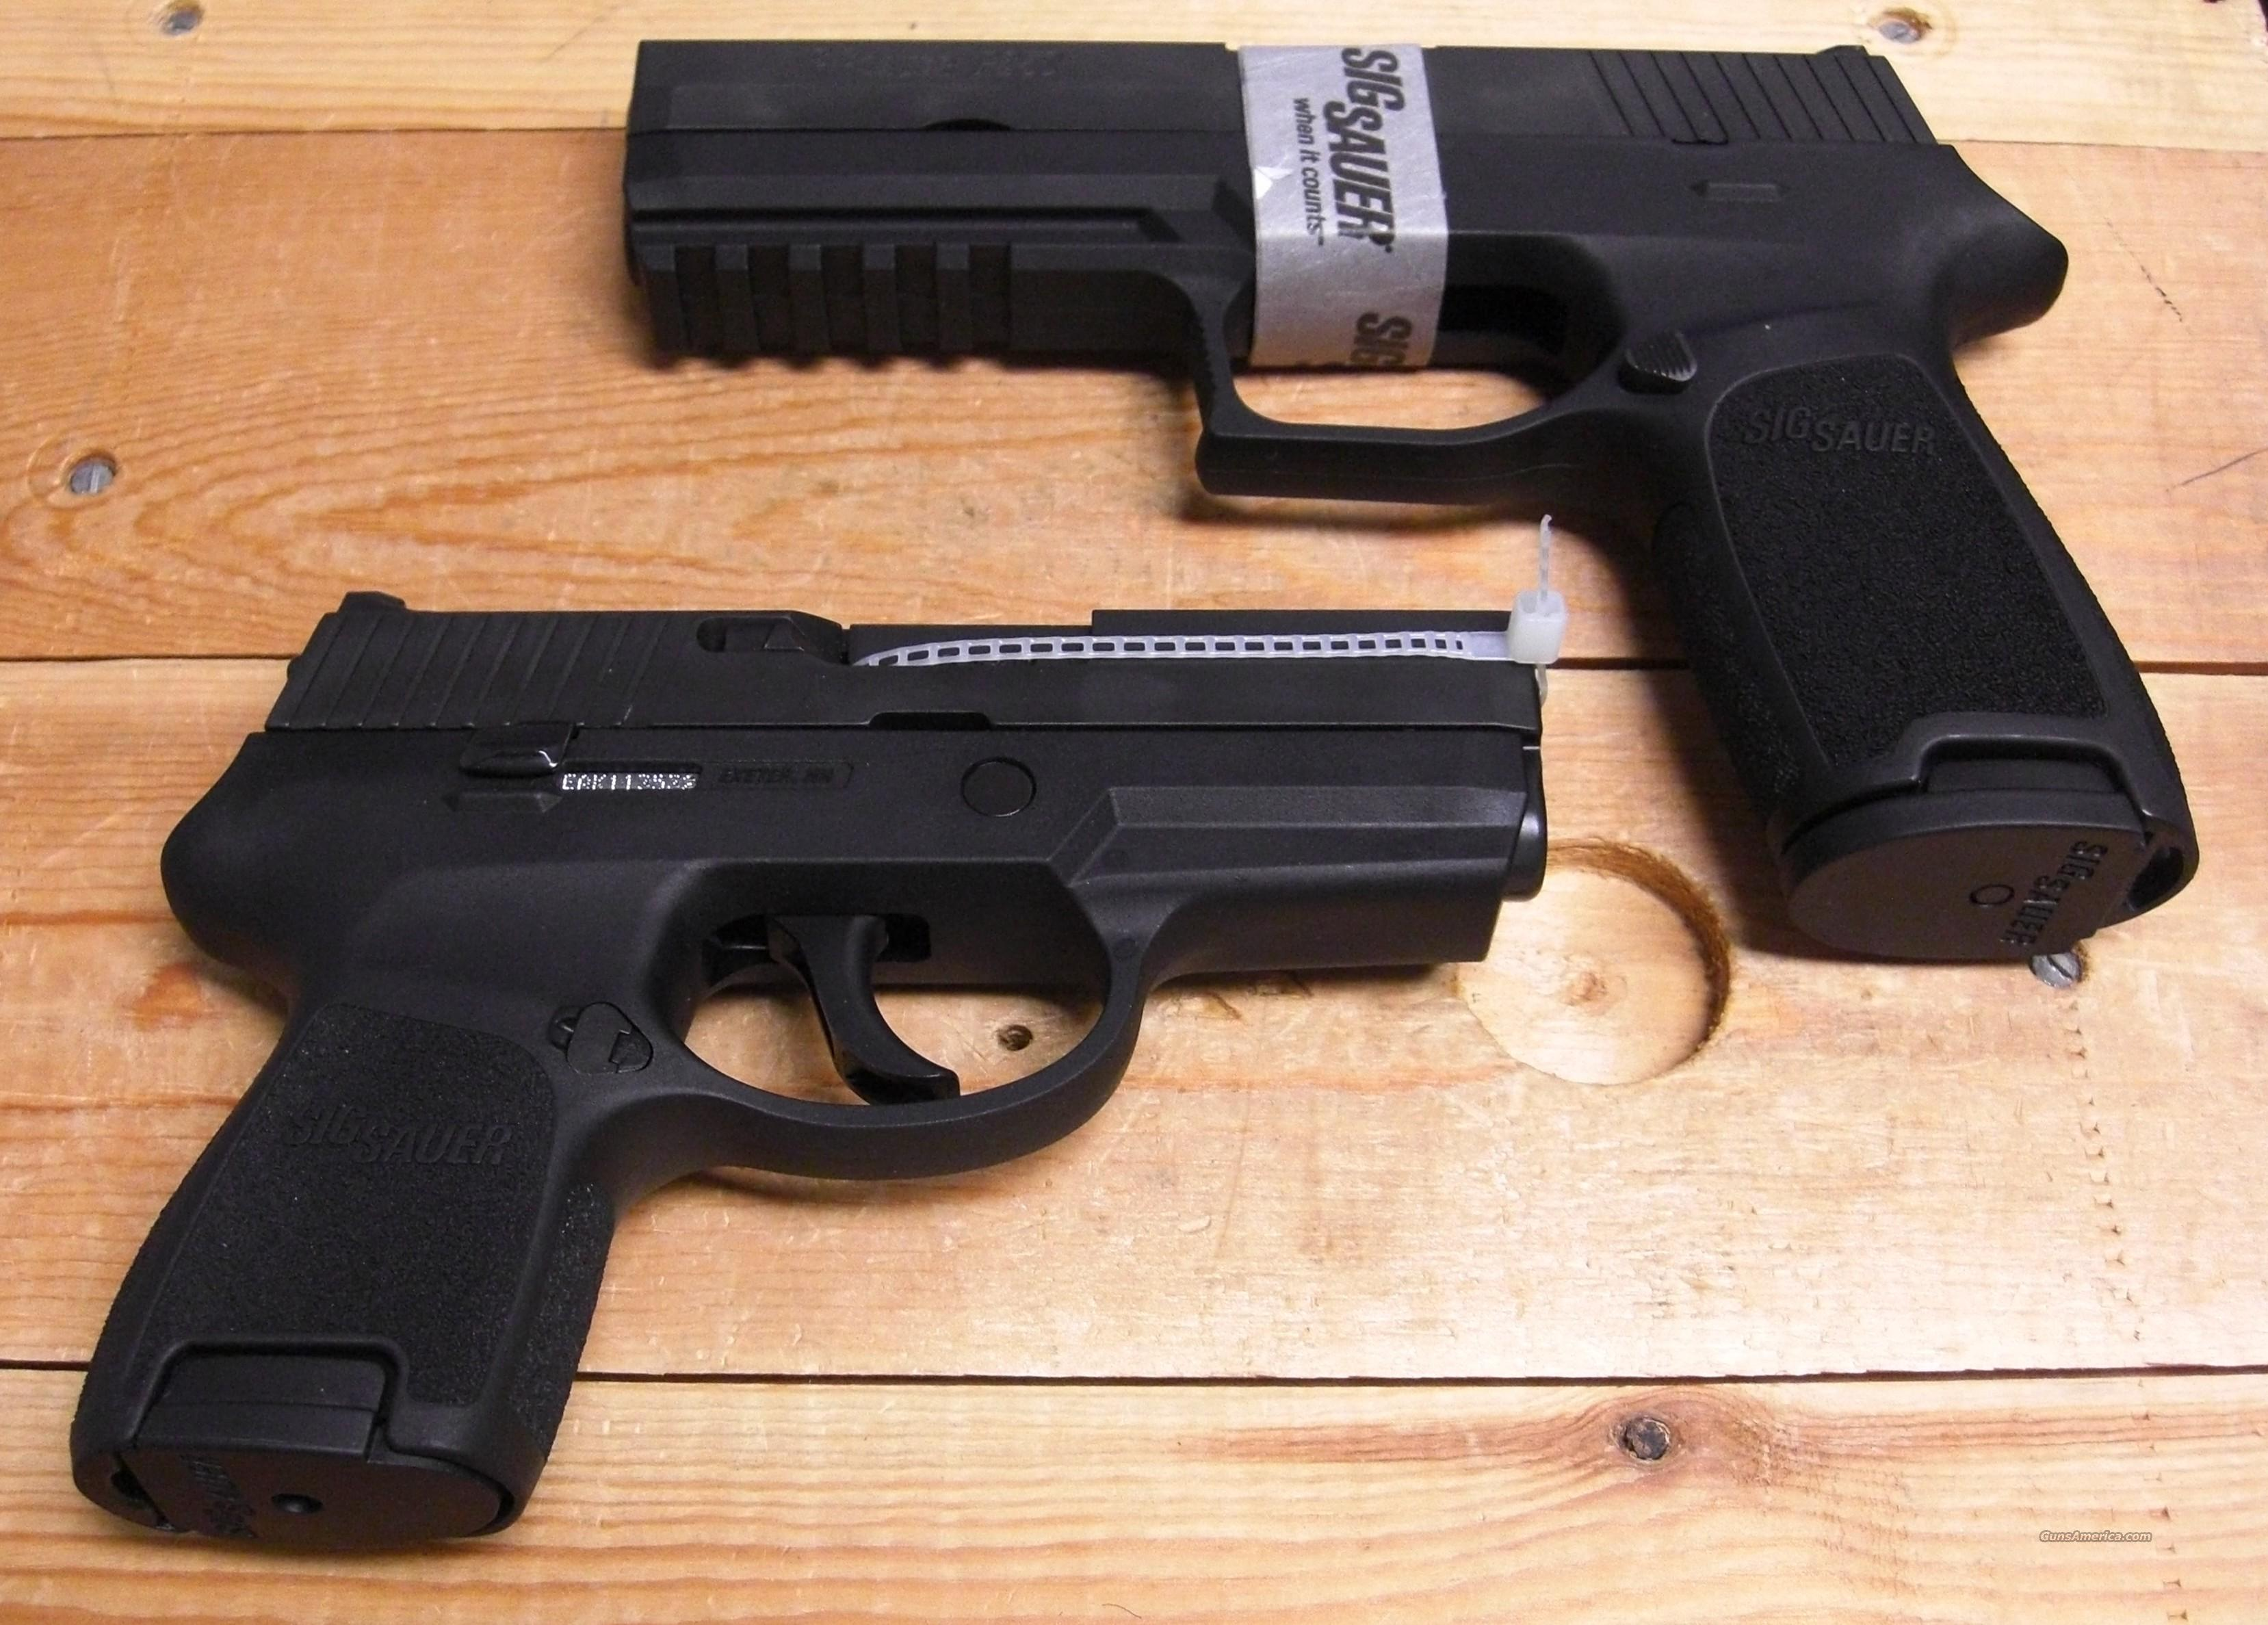 P250F/SC 2 Sum (2 diff. frames)w/2 mags.  Guns > Pistols > Sig - Sauer/Sigarms Pistols > P250